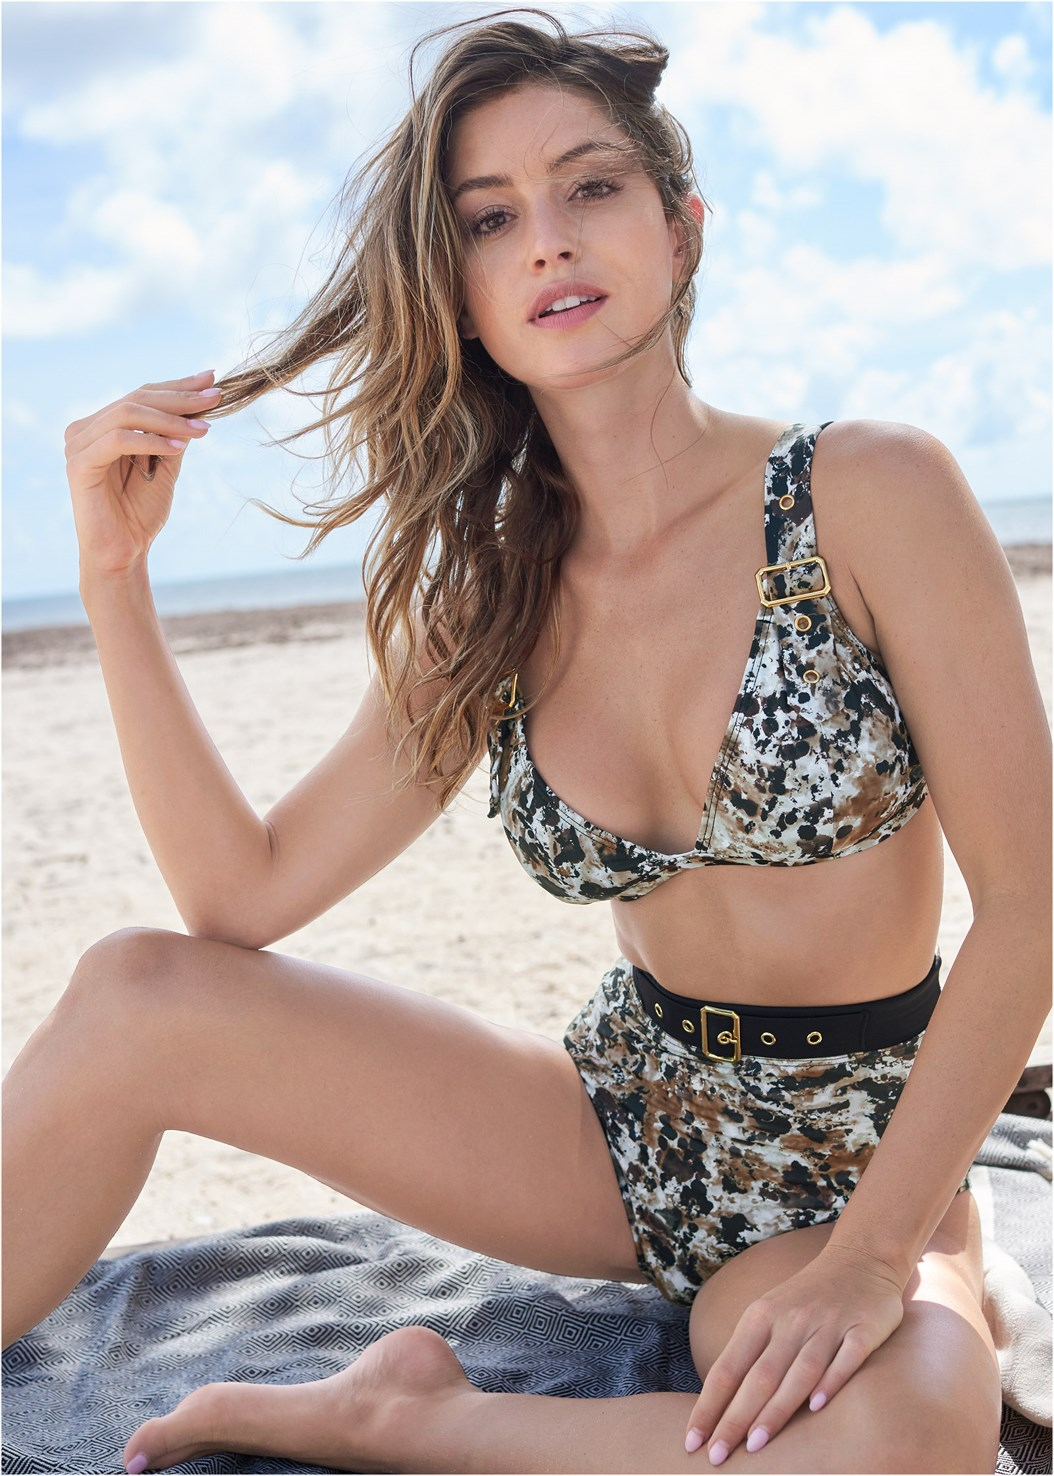 Jet Set High Waist Bottom,Jet Set Belted Triangle Top,Jet Set Belted Tankini Top,Marilyn Underwire Push Up Halter Top,Deep V Cover-Up Tunic